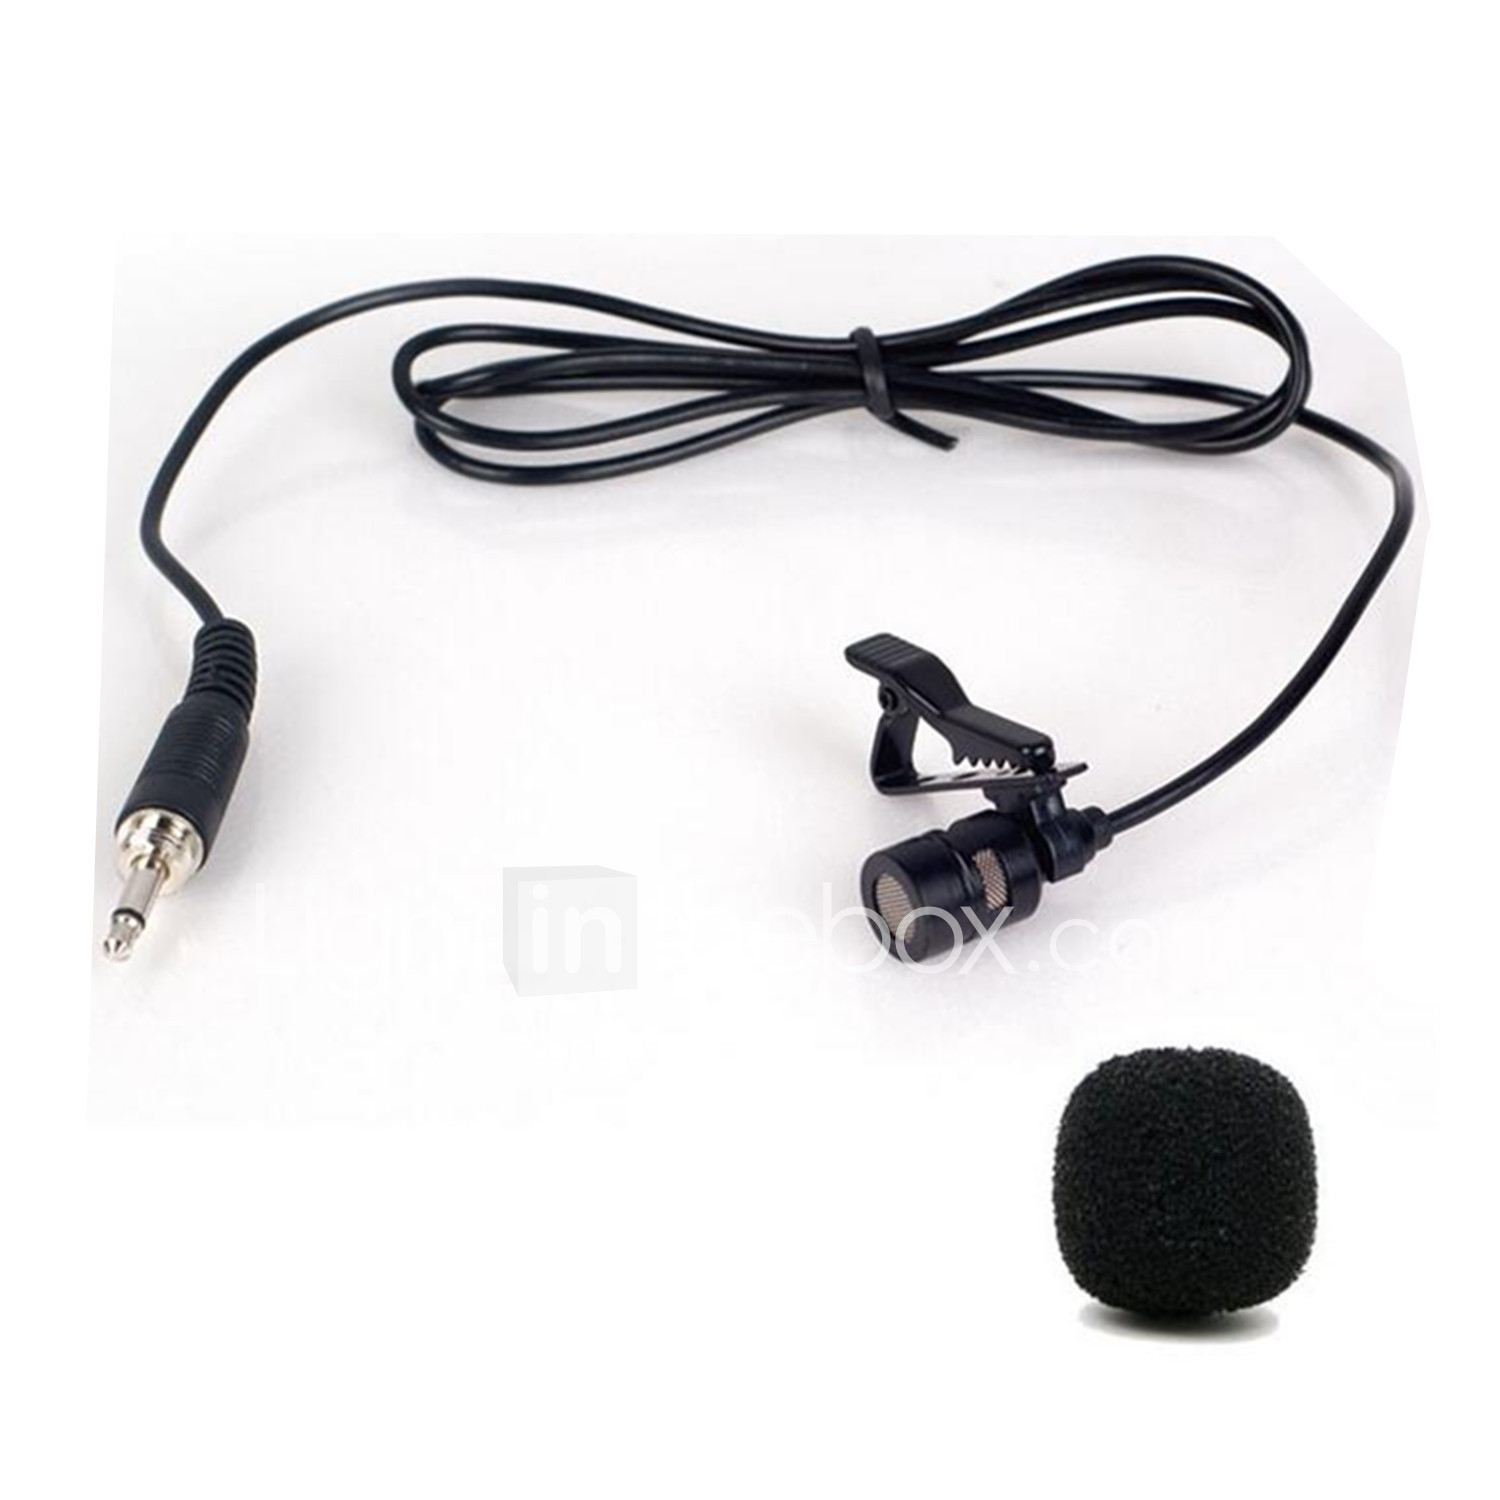 HDE 2 Pack Mini Hands Free Lavalier Clip-On Lapel Mic 3.5mm Jack Computer Microphone